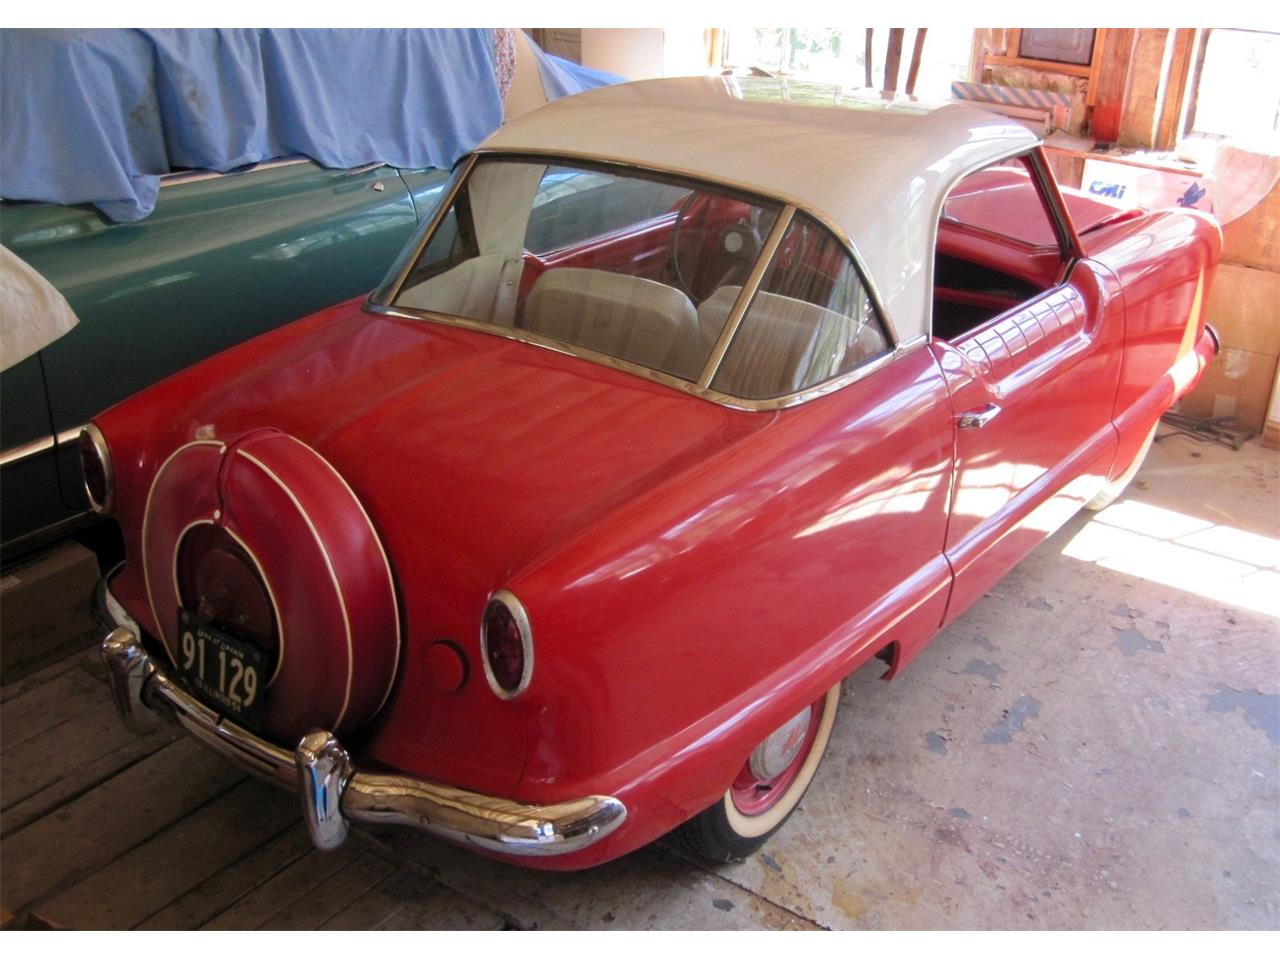 1954 Nash Metropolitan for sale in Port Townsend, WA – photo 2